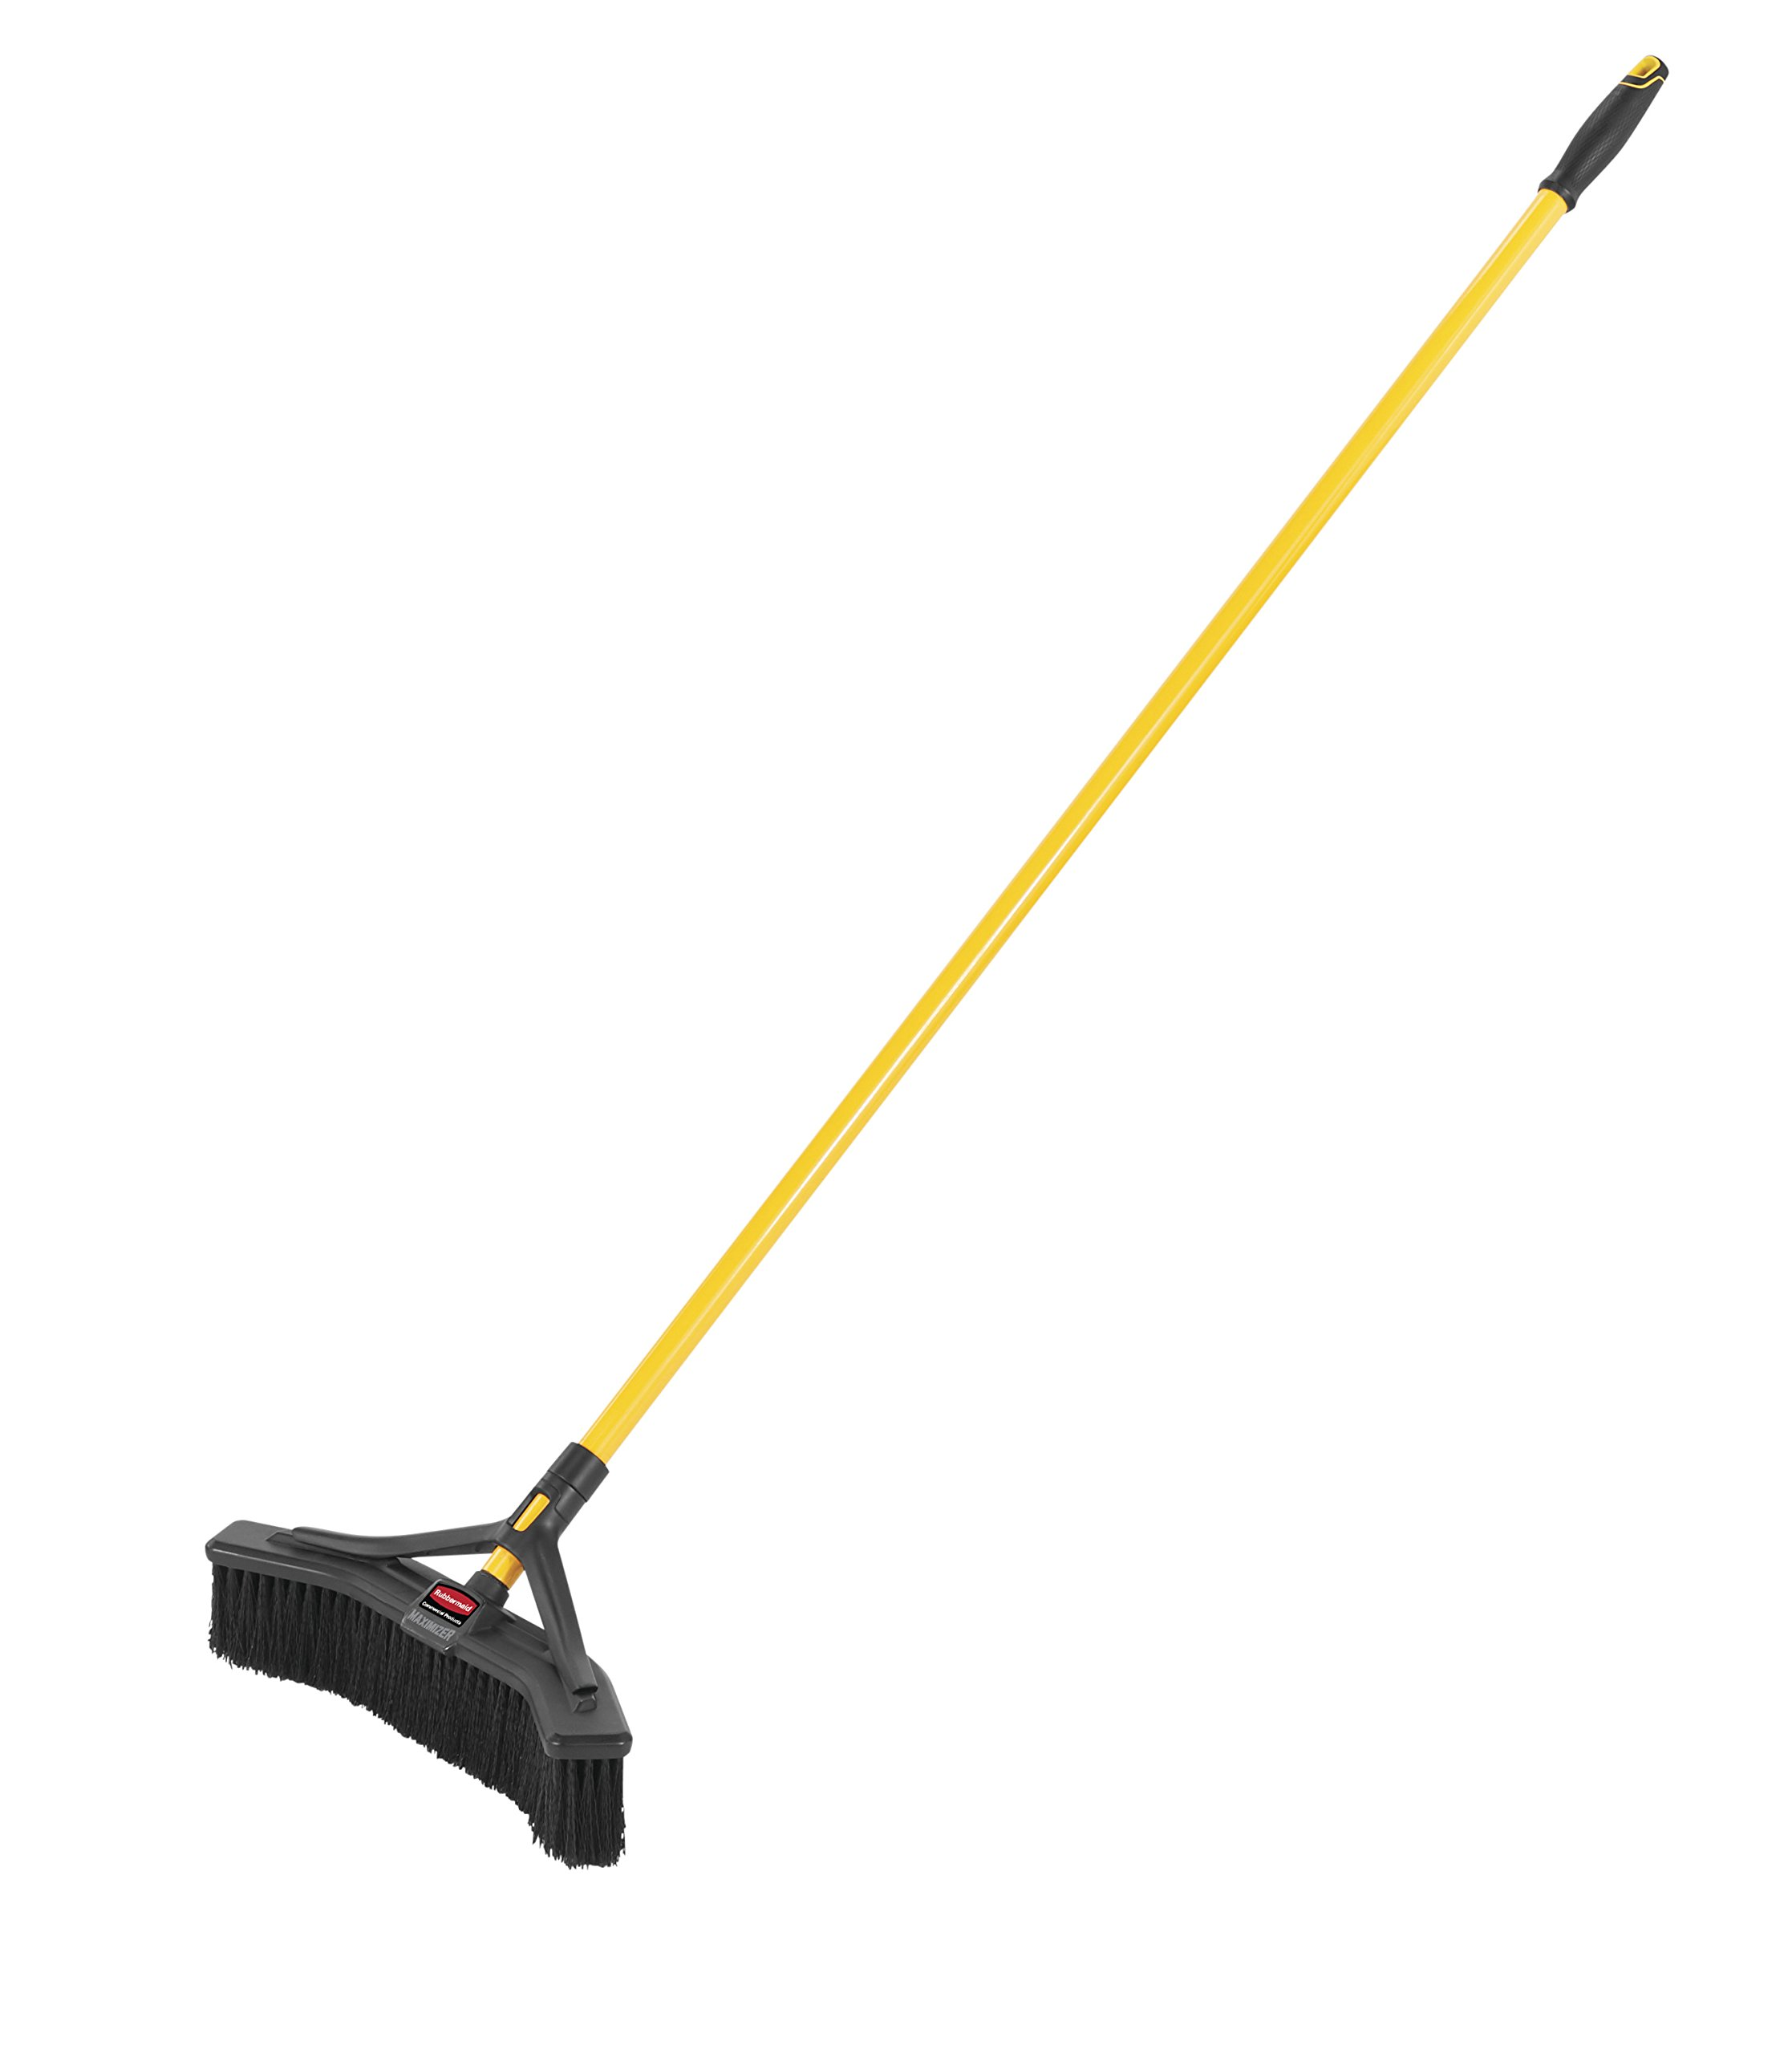 Rubbermaid Commercial Products Maximizer Push-to-Center Broom with Multi-Purpose Bristle, 18'' Wide, Black (2018727) by Rubbermaid Commercial Products (Image #1)